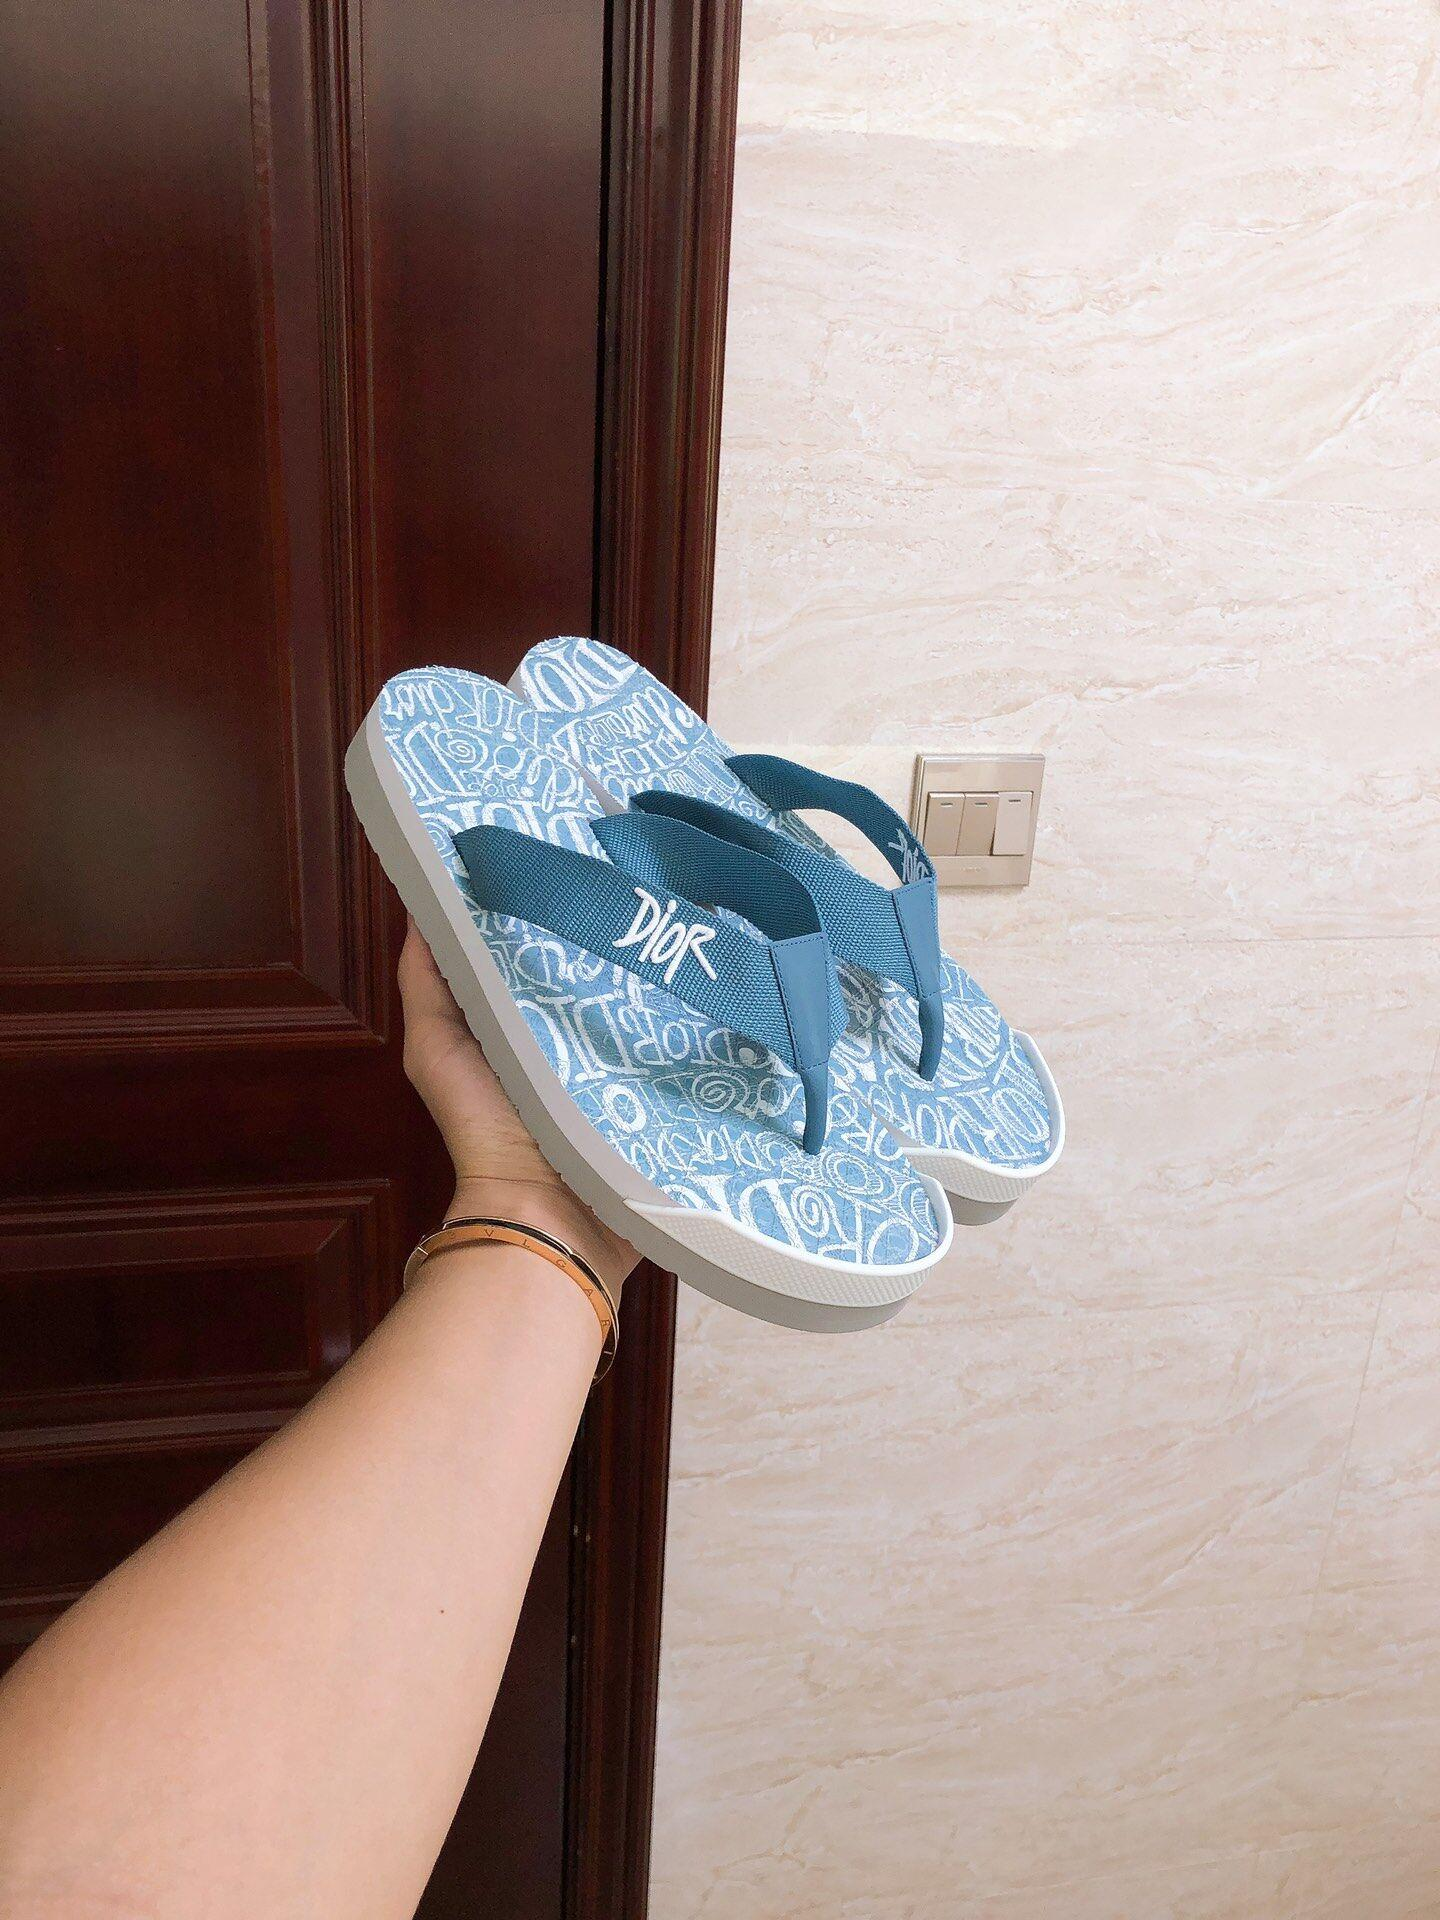 FLIP-FLOPS Blue Nylon with DIOR AND SHAWN Embroidery 1